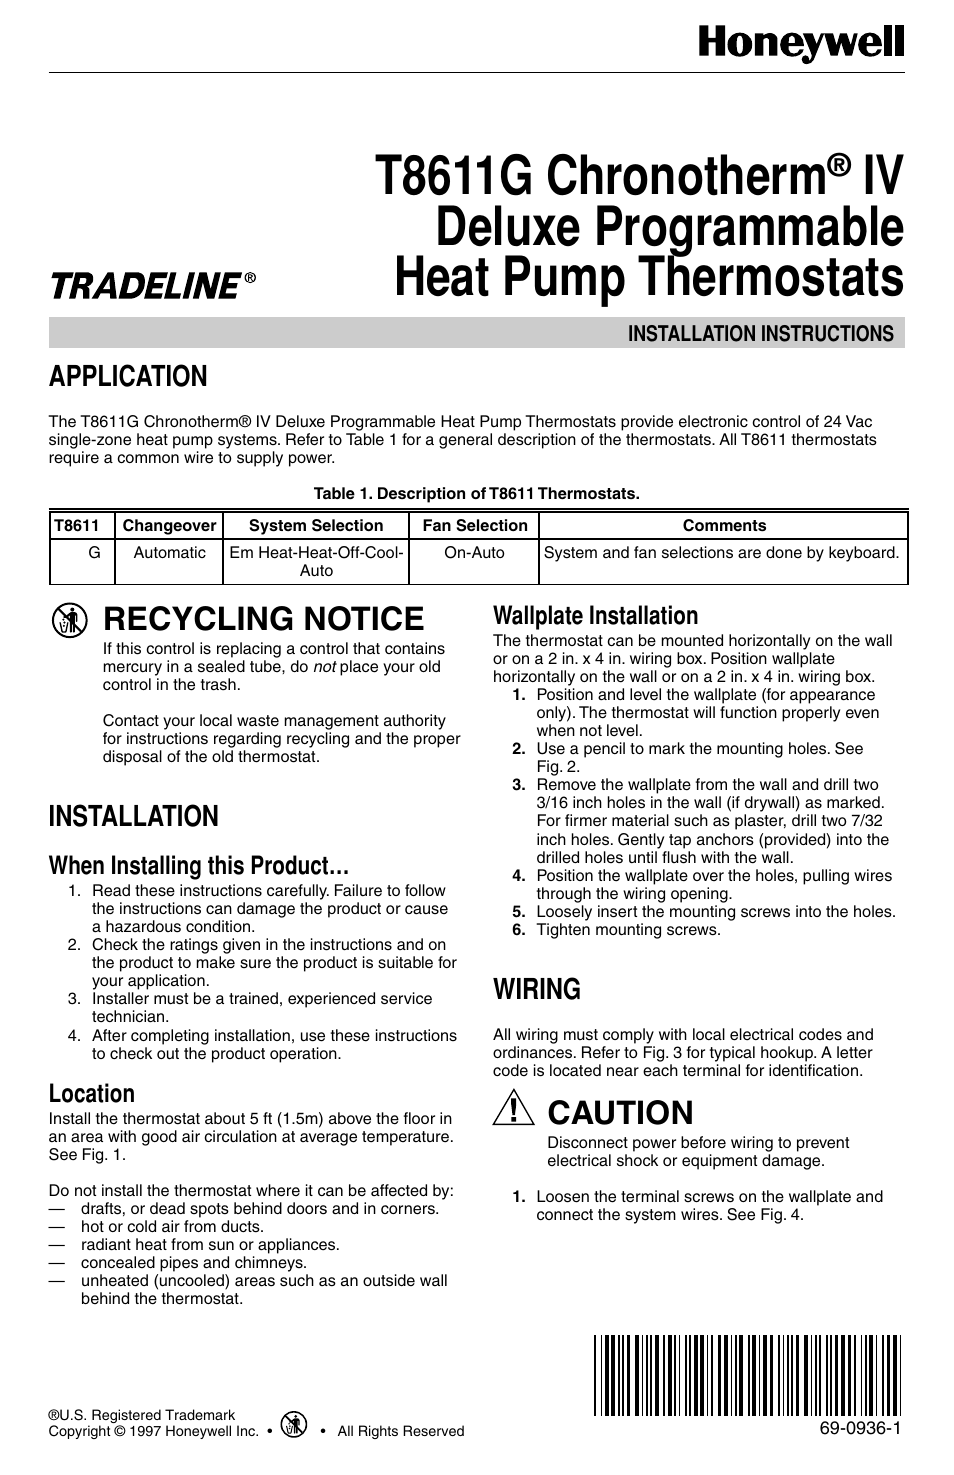 Honeywell T8611g Thermostat Wiring Diagram Portal Focuspro 6000 Block Chronotherm Iv User Manual 12 Pages Rh Manualsdir Com Heat Pump